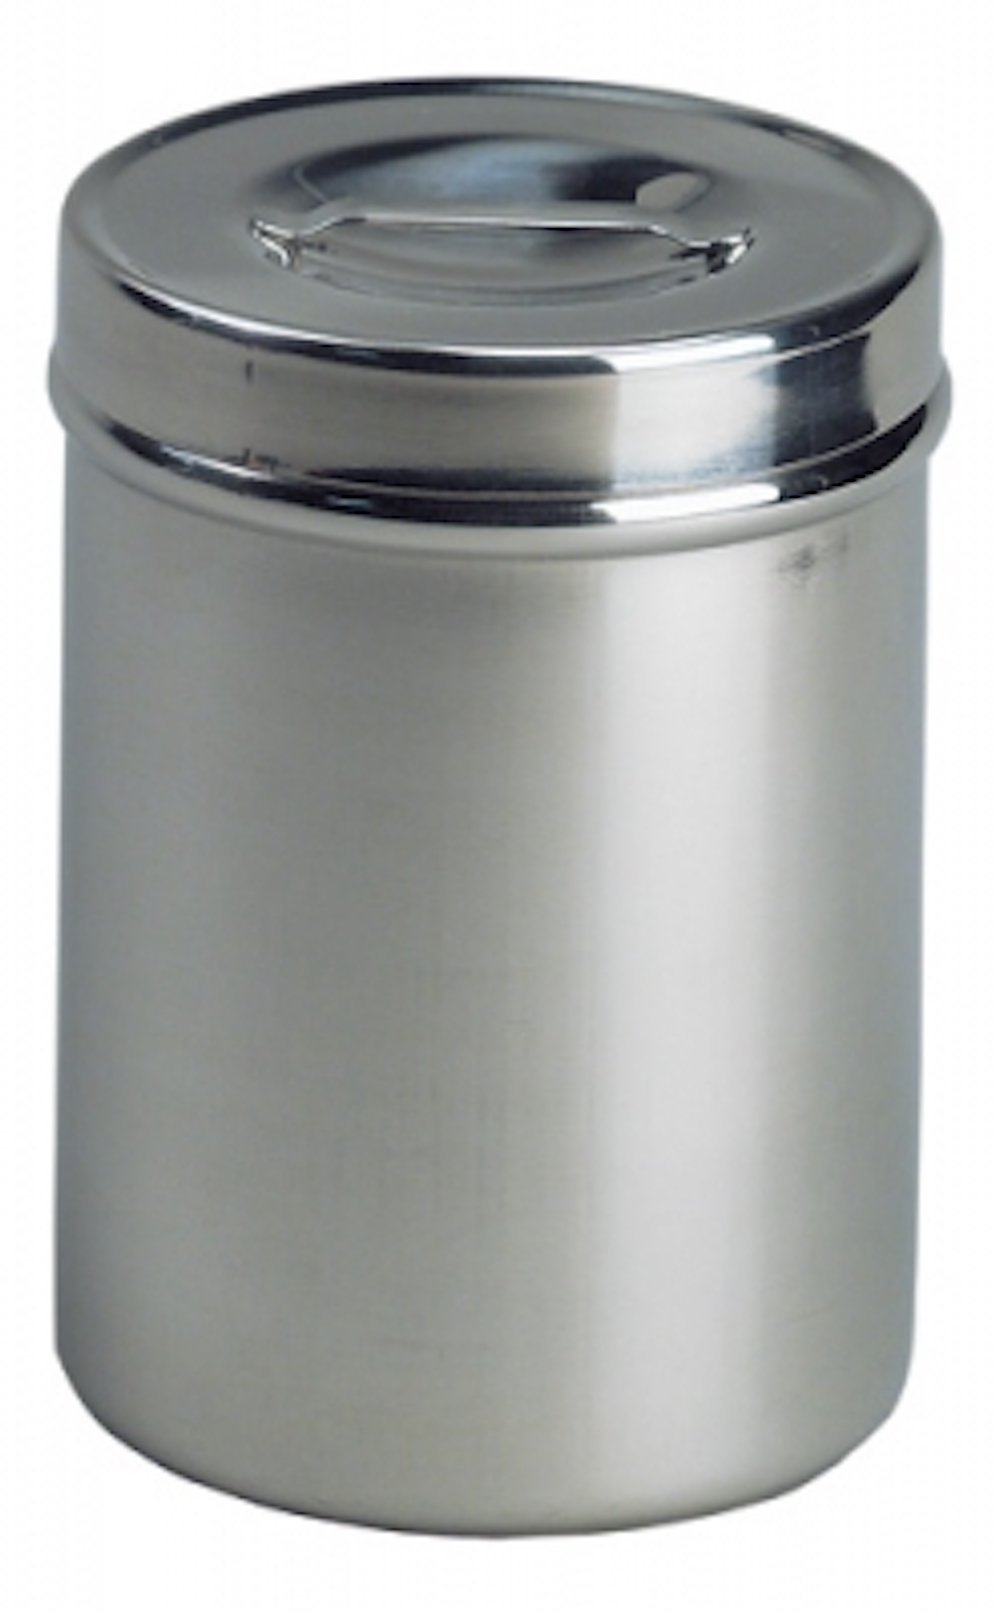 Pivit Antibacterial S.S Medical Dressing Storage Sundry Jar | 2 1/8 qt | 6 7/8'' x 4 7/8'' | Highest Grade (18/8) German Stainless Steel | Prevents Bacteria Growth | Slip Over Lid with Recessed Handle